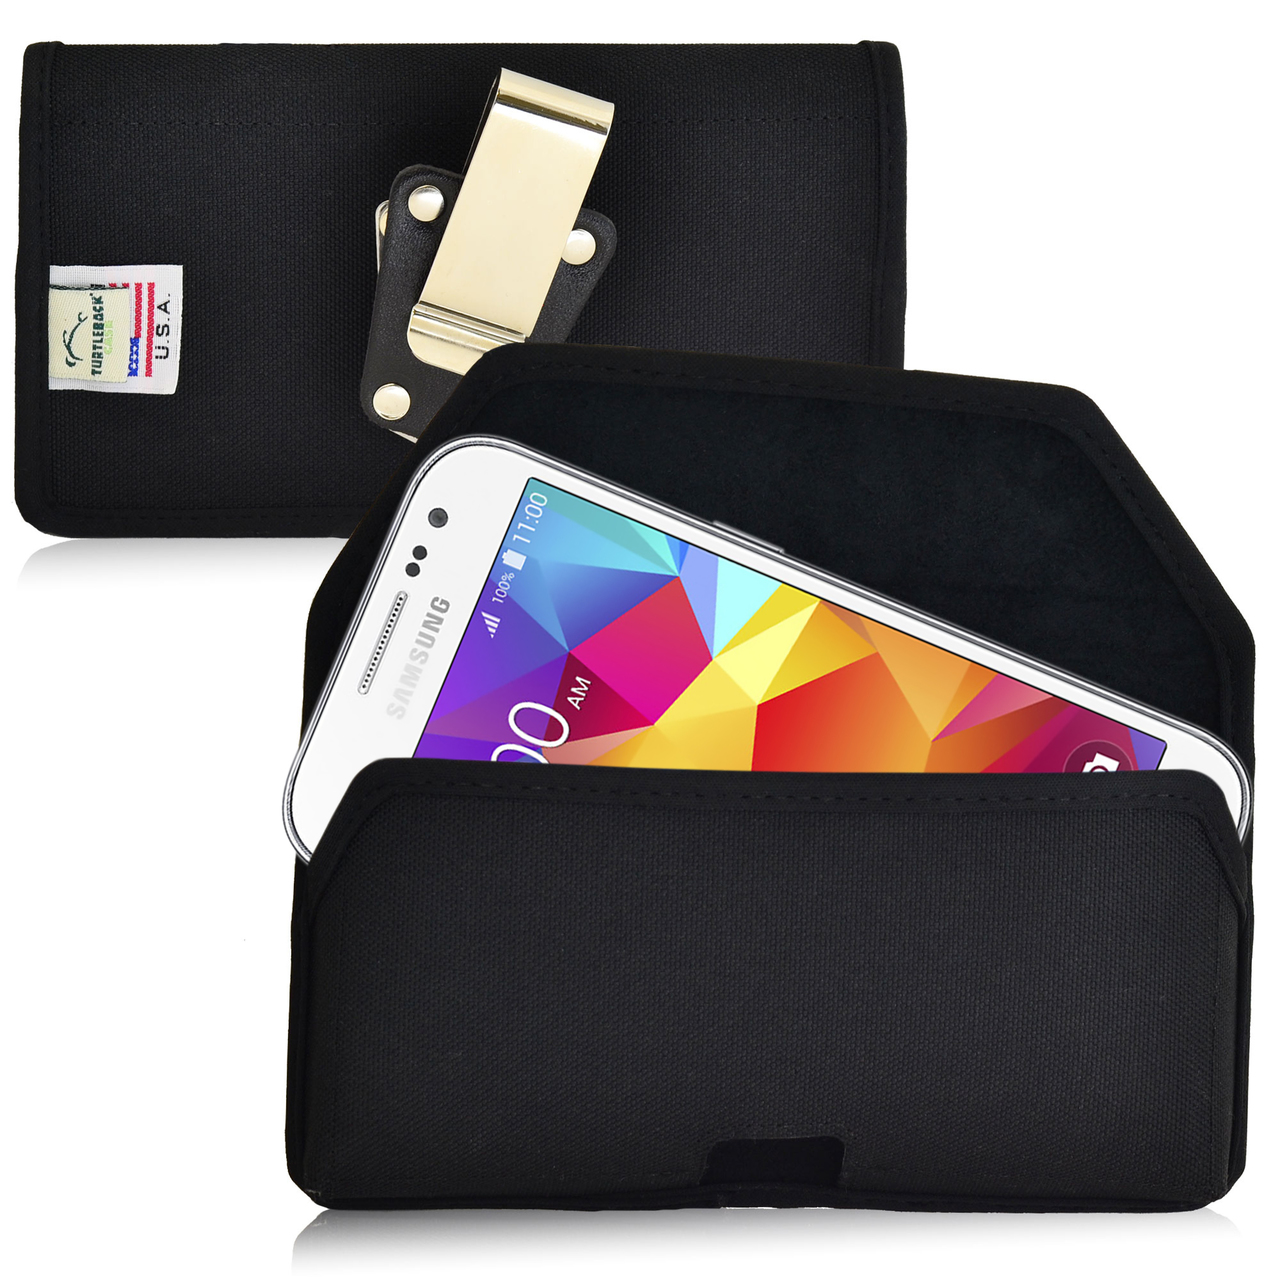 Samsung Galaxy Core Prime Pouch, Turtleback [Black] Horizontal Nylon Holster Pouch Case w/ Rotating Metal Belt Clip - Made in the USA!